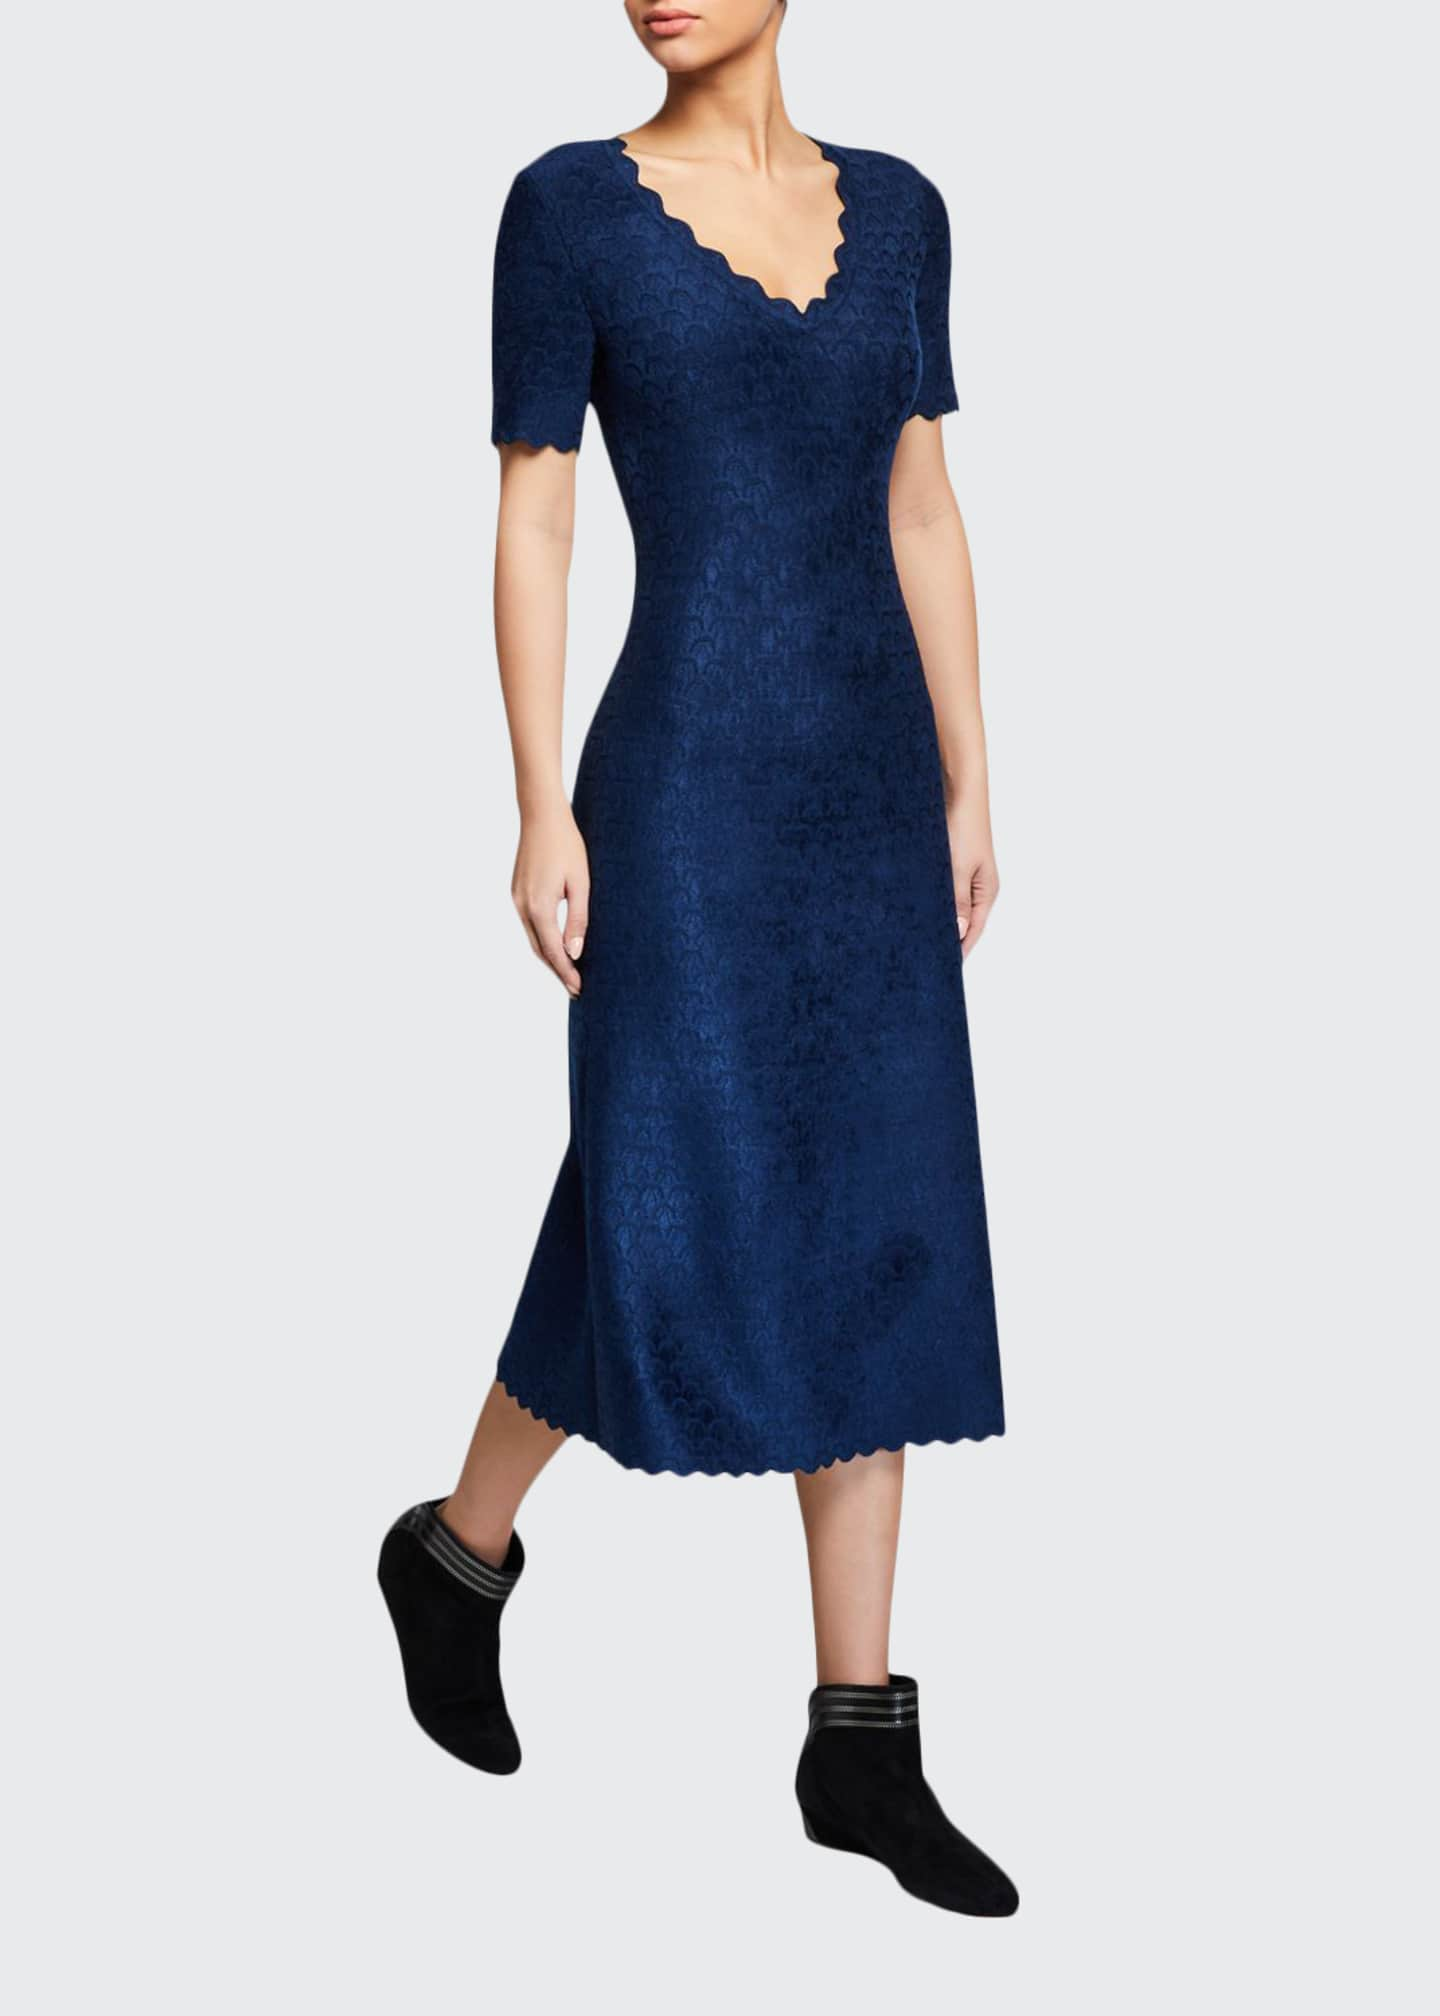 ALAIA Velvet Embossed Scalloped Dress